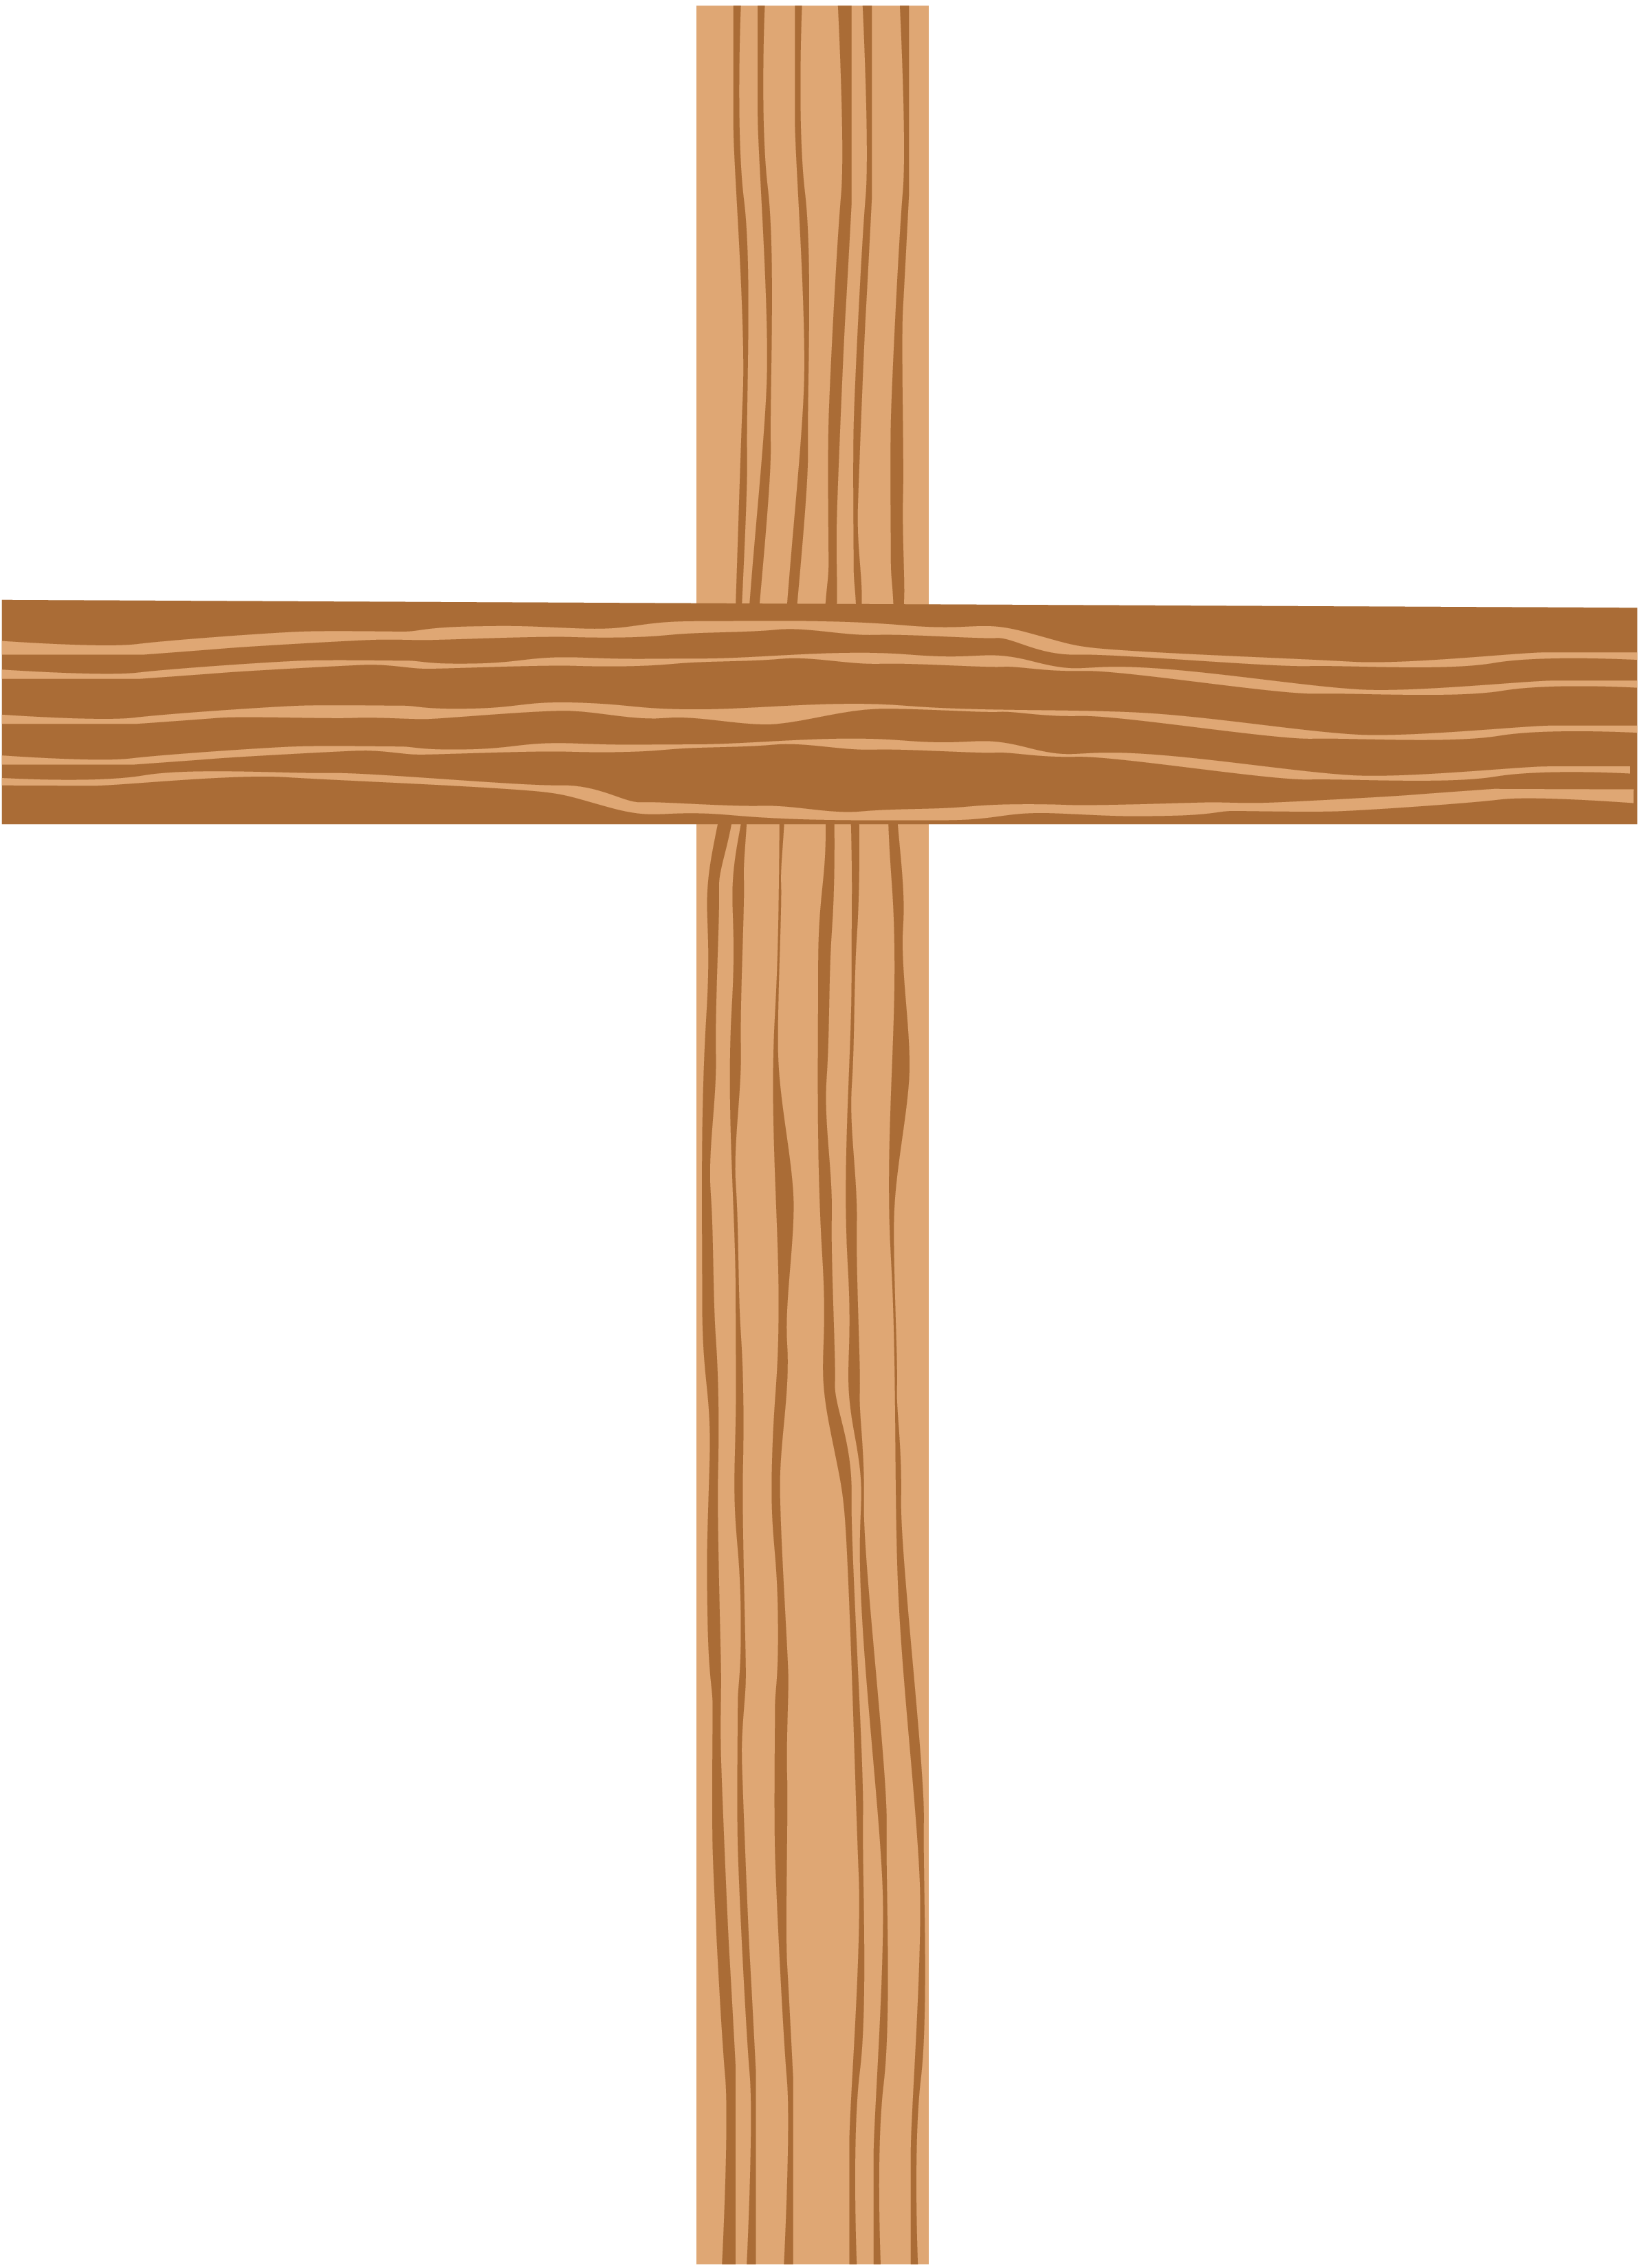 Crucifix vector wedding cross. Christian png images free